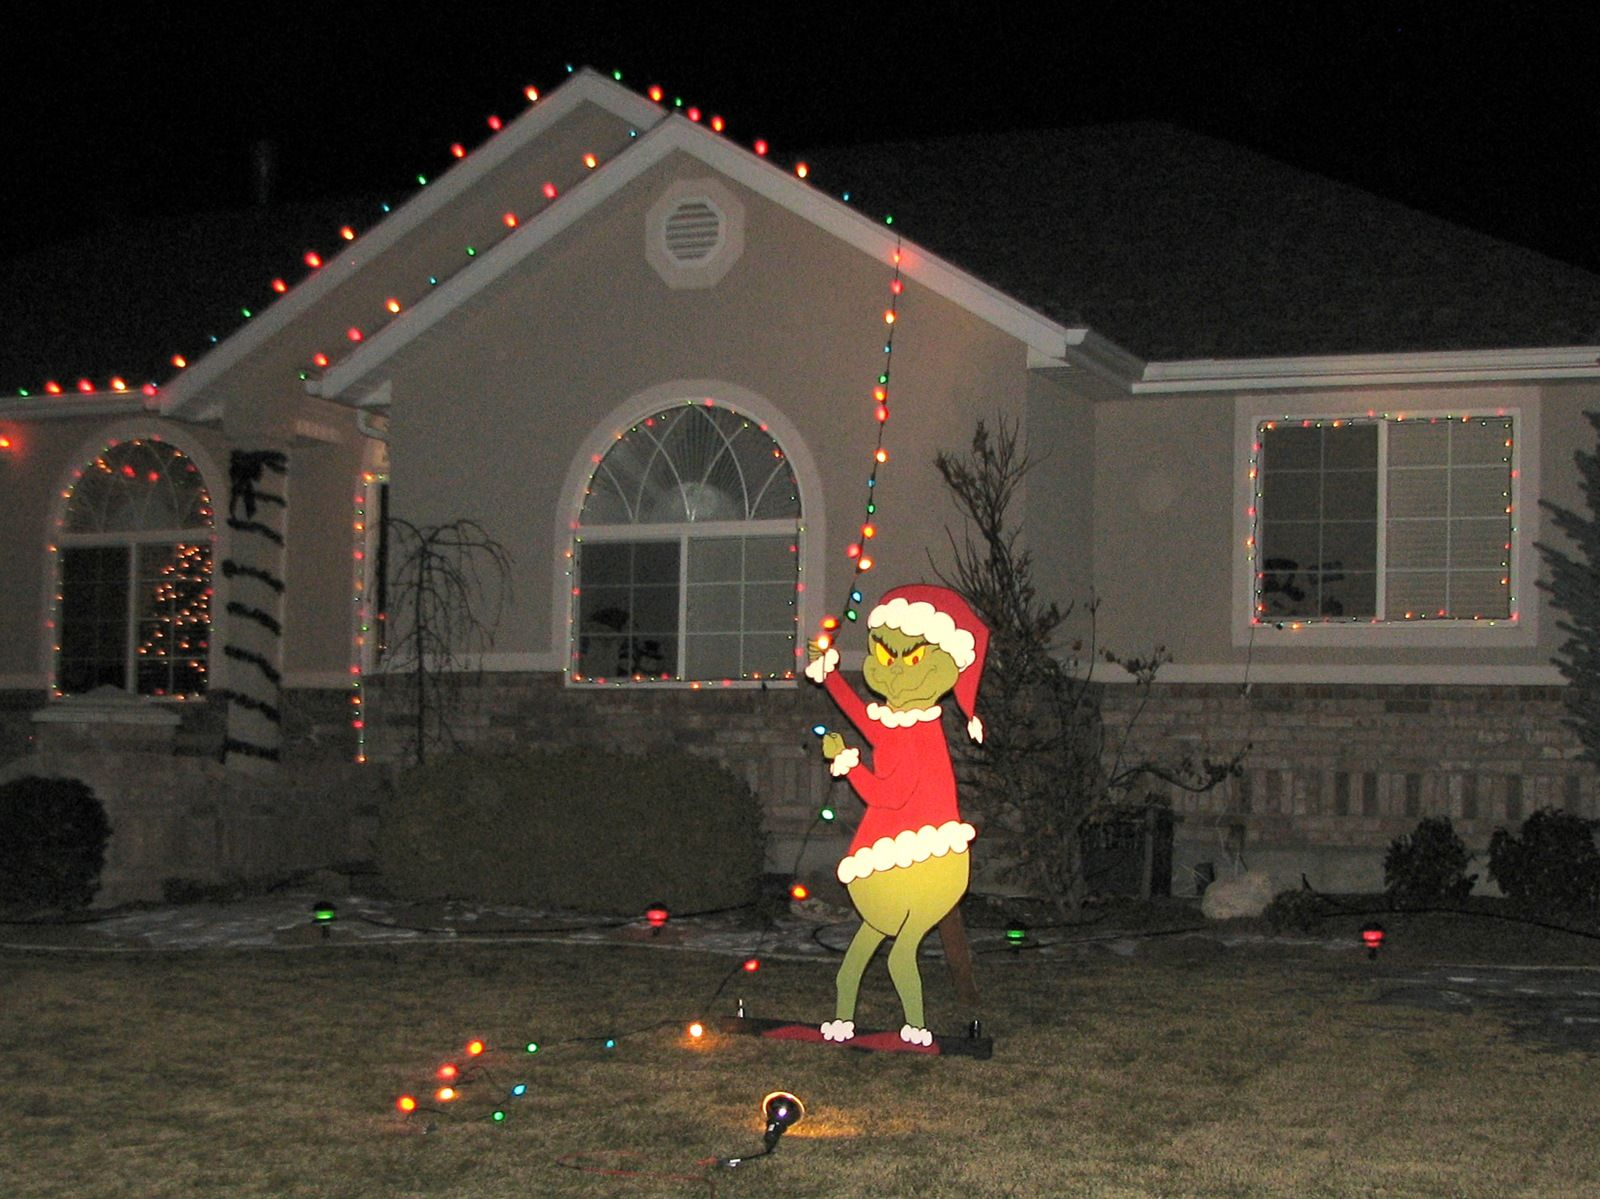 grinch decorations christmas yard decorations christmas diy grinch christmas tree lawn decorations